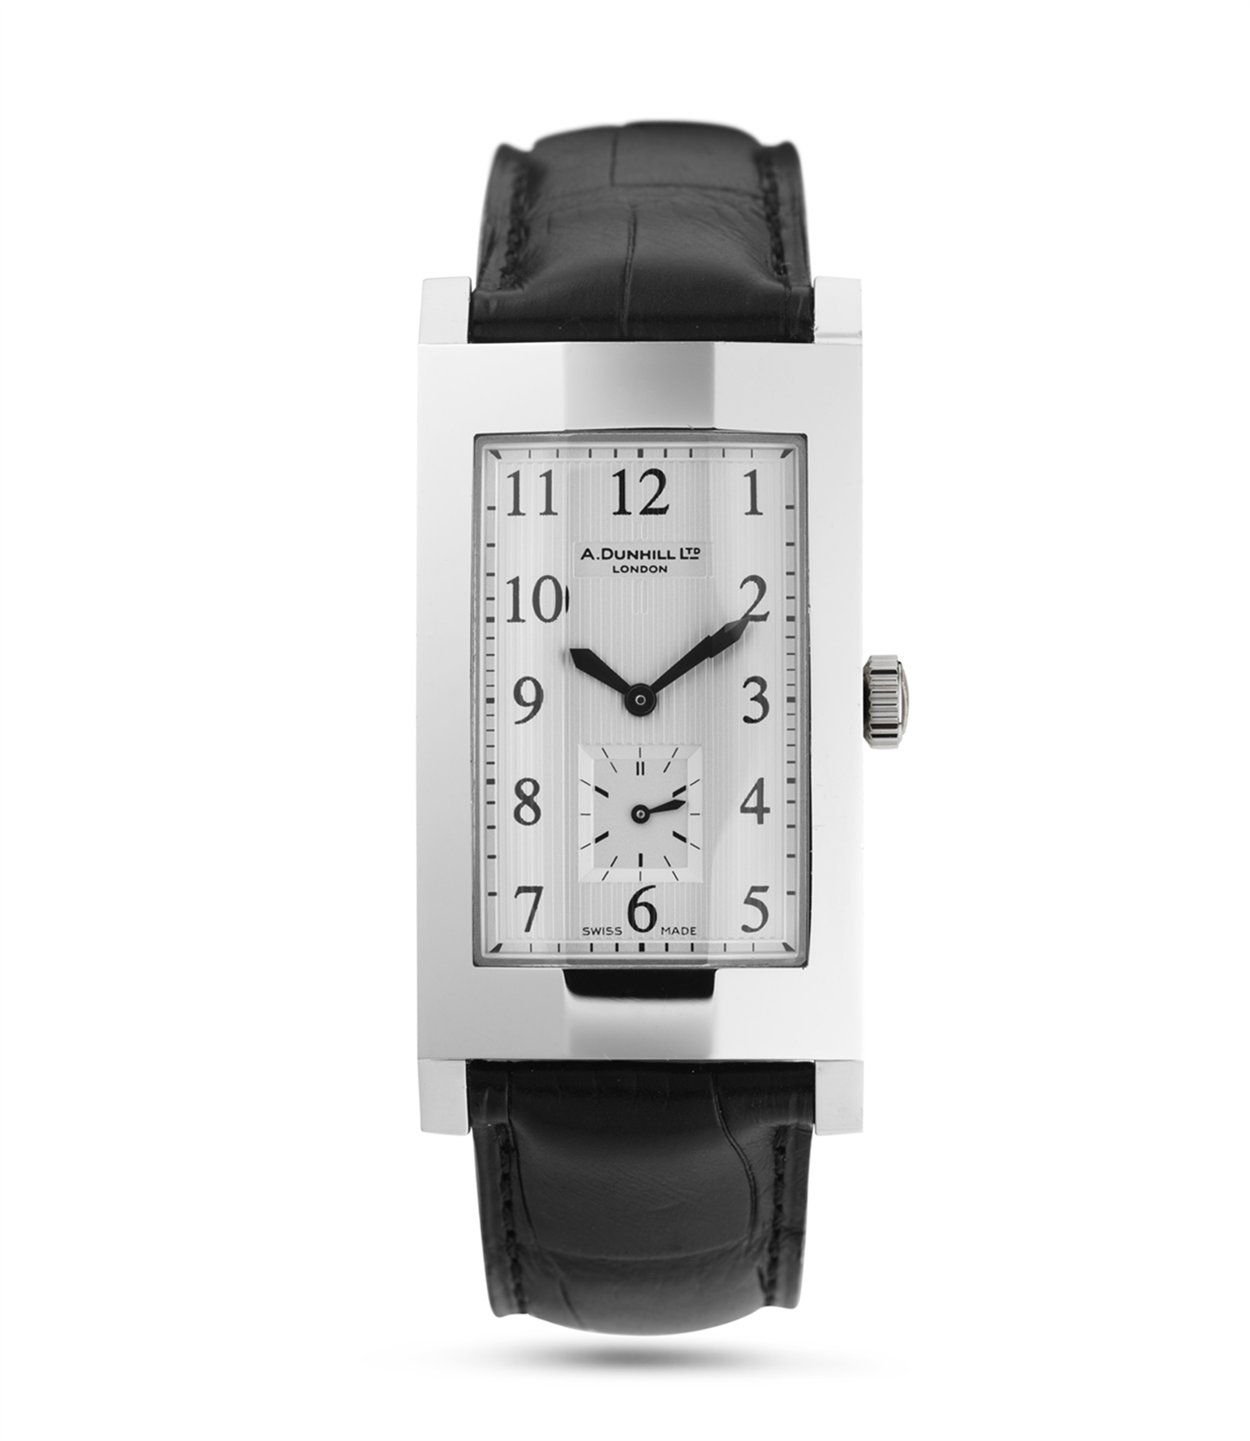 alfred dunhill facet watch stainless steel strap watches alfred dunhill facet watch stainless steel strap